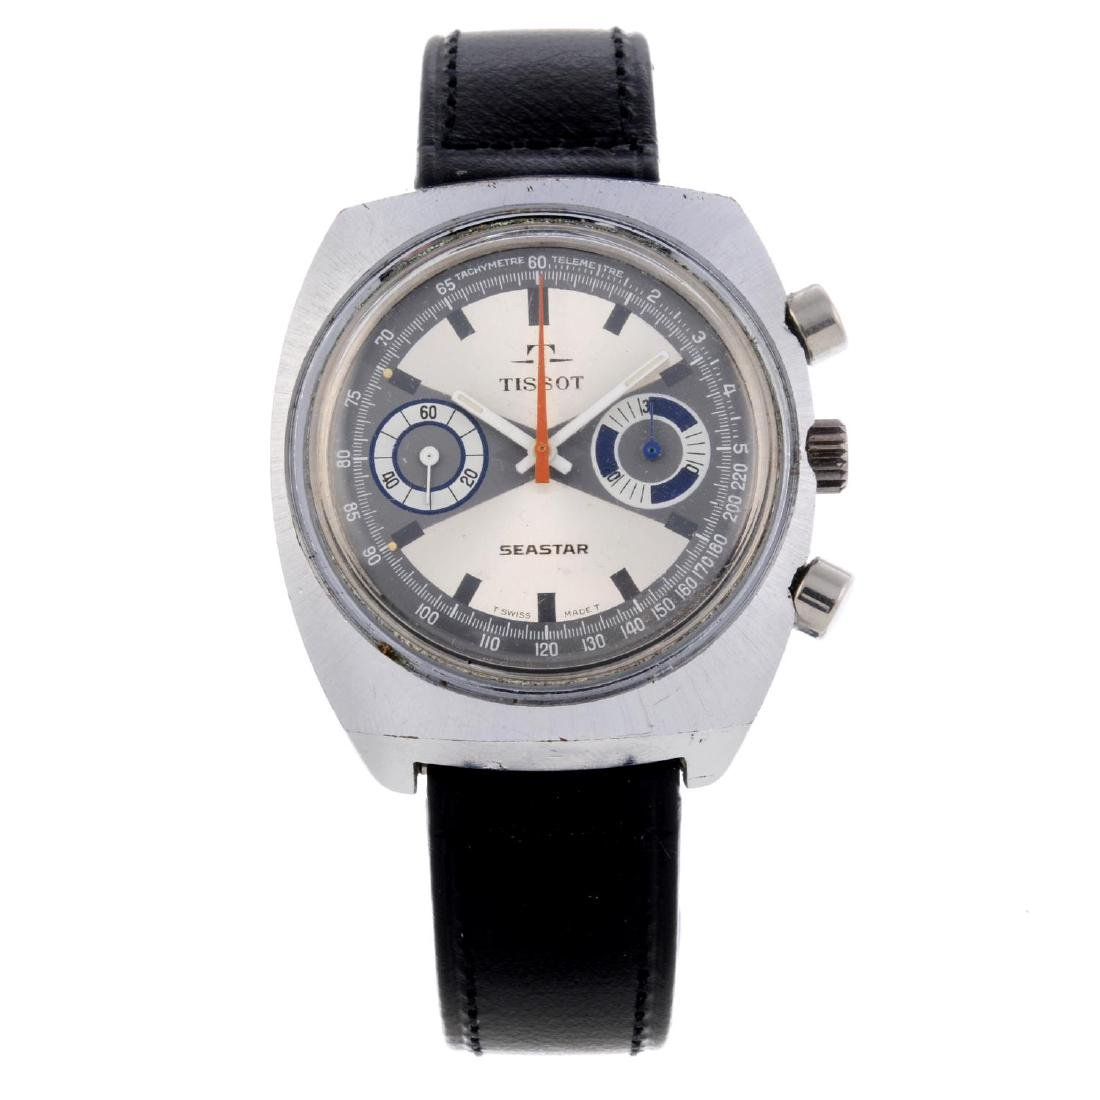 TISSOT - a gentleman's Seastar chronograph wrist watch.